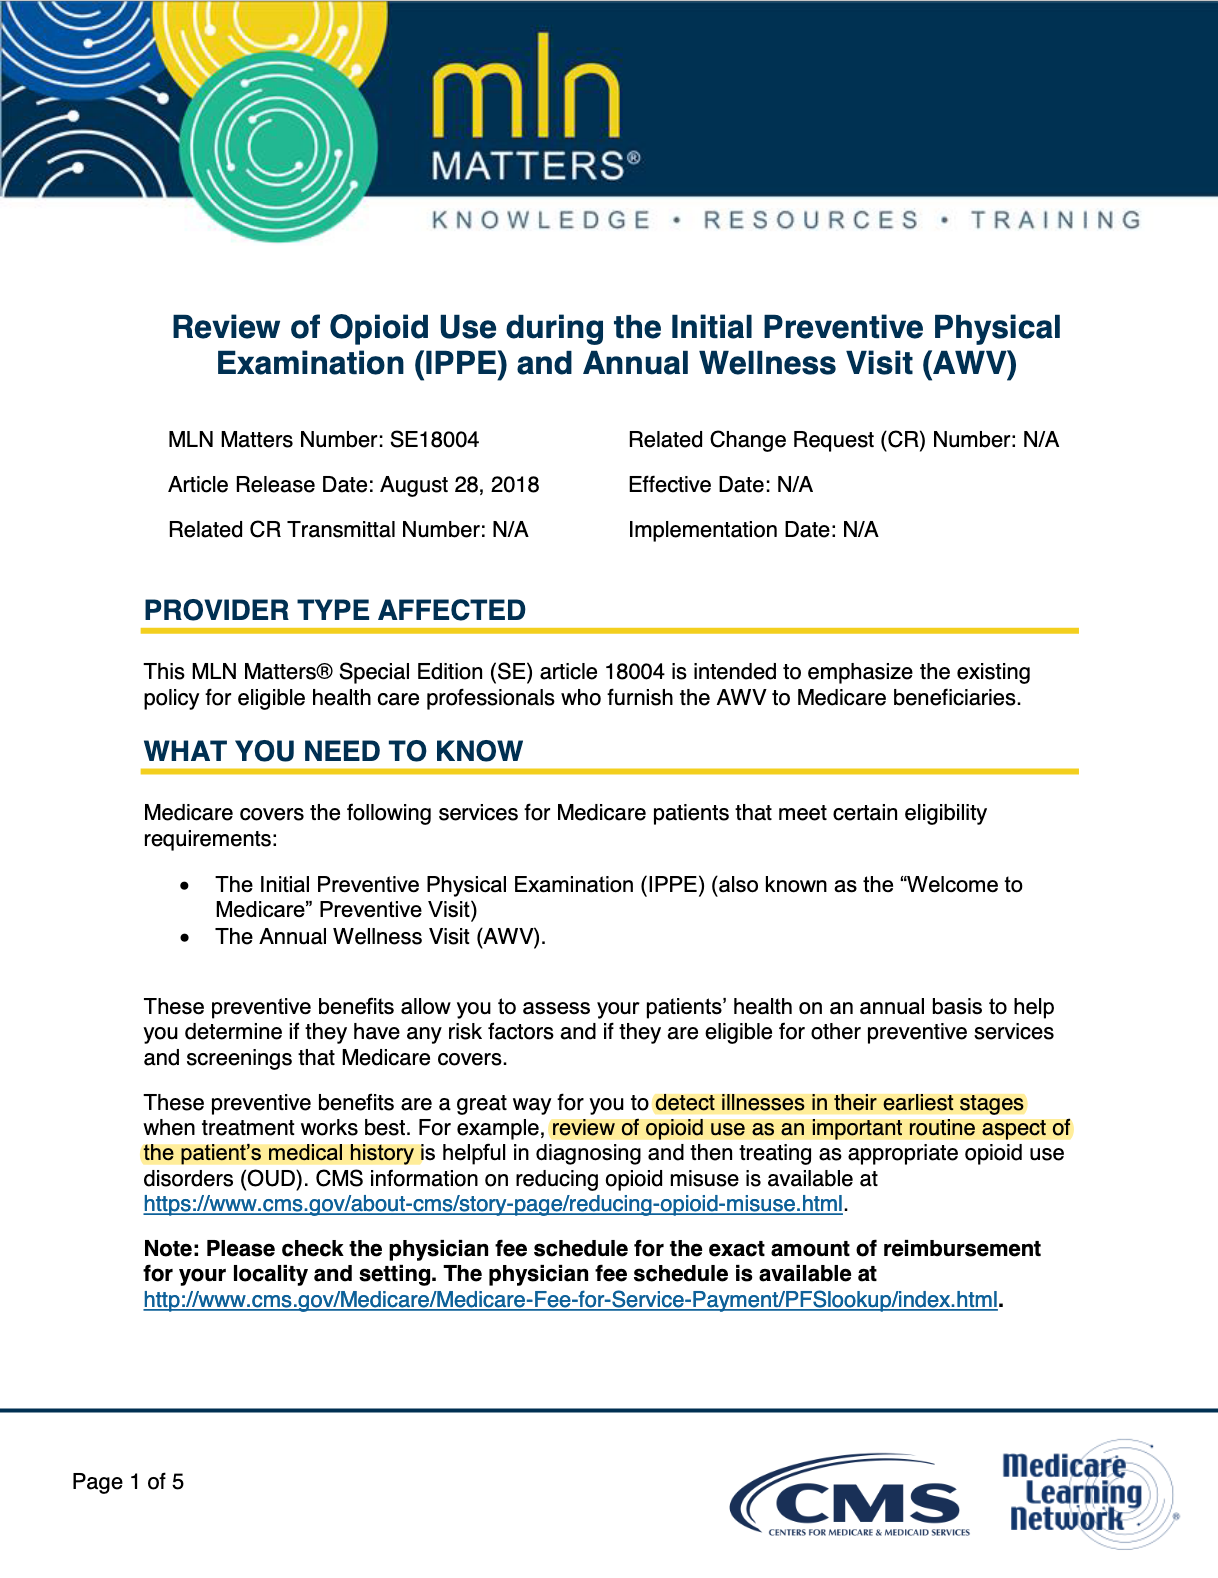 Download Review of Opioid Use during the Initial Preventive Physical Examination and Annual Wellness Visit in PDF format.